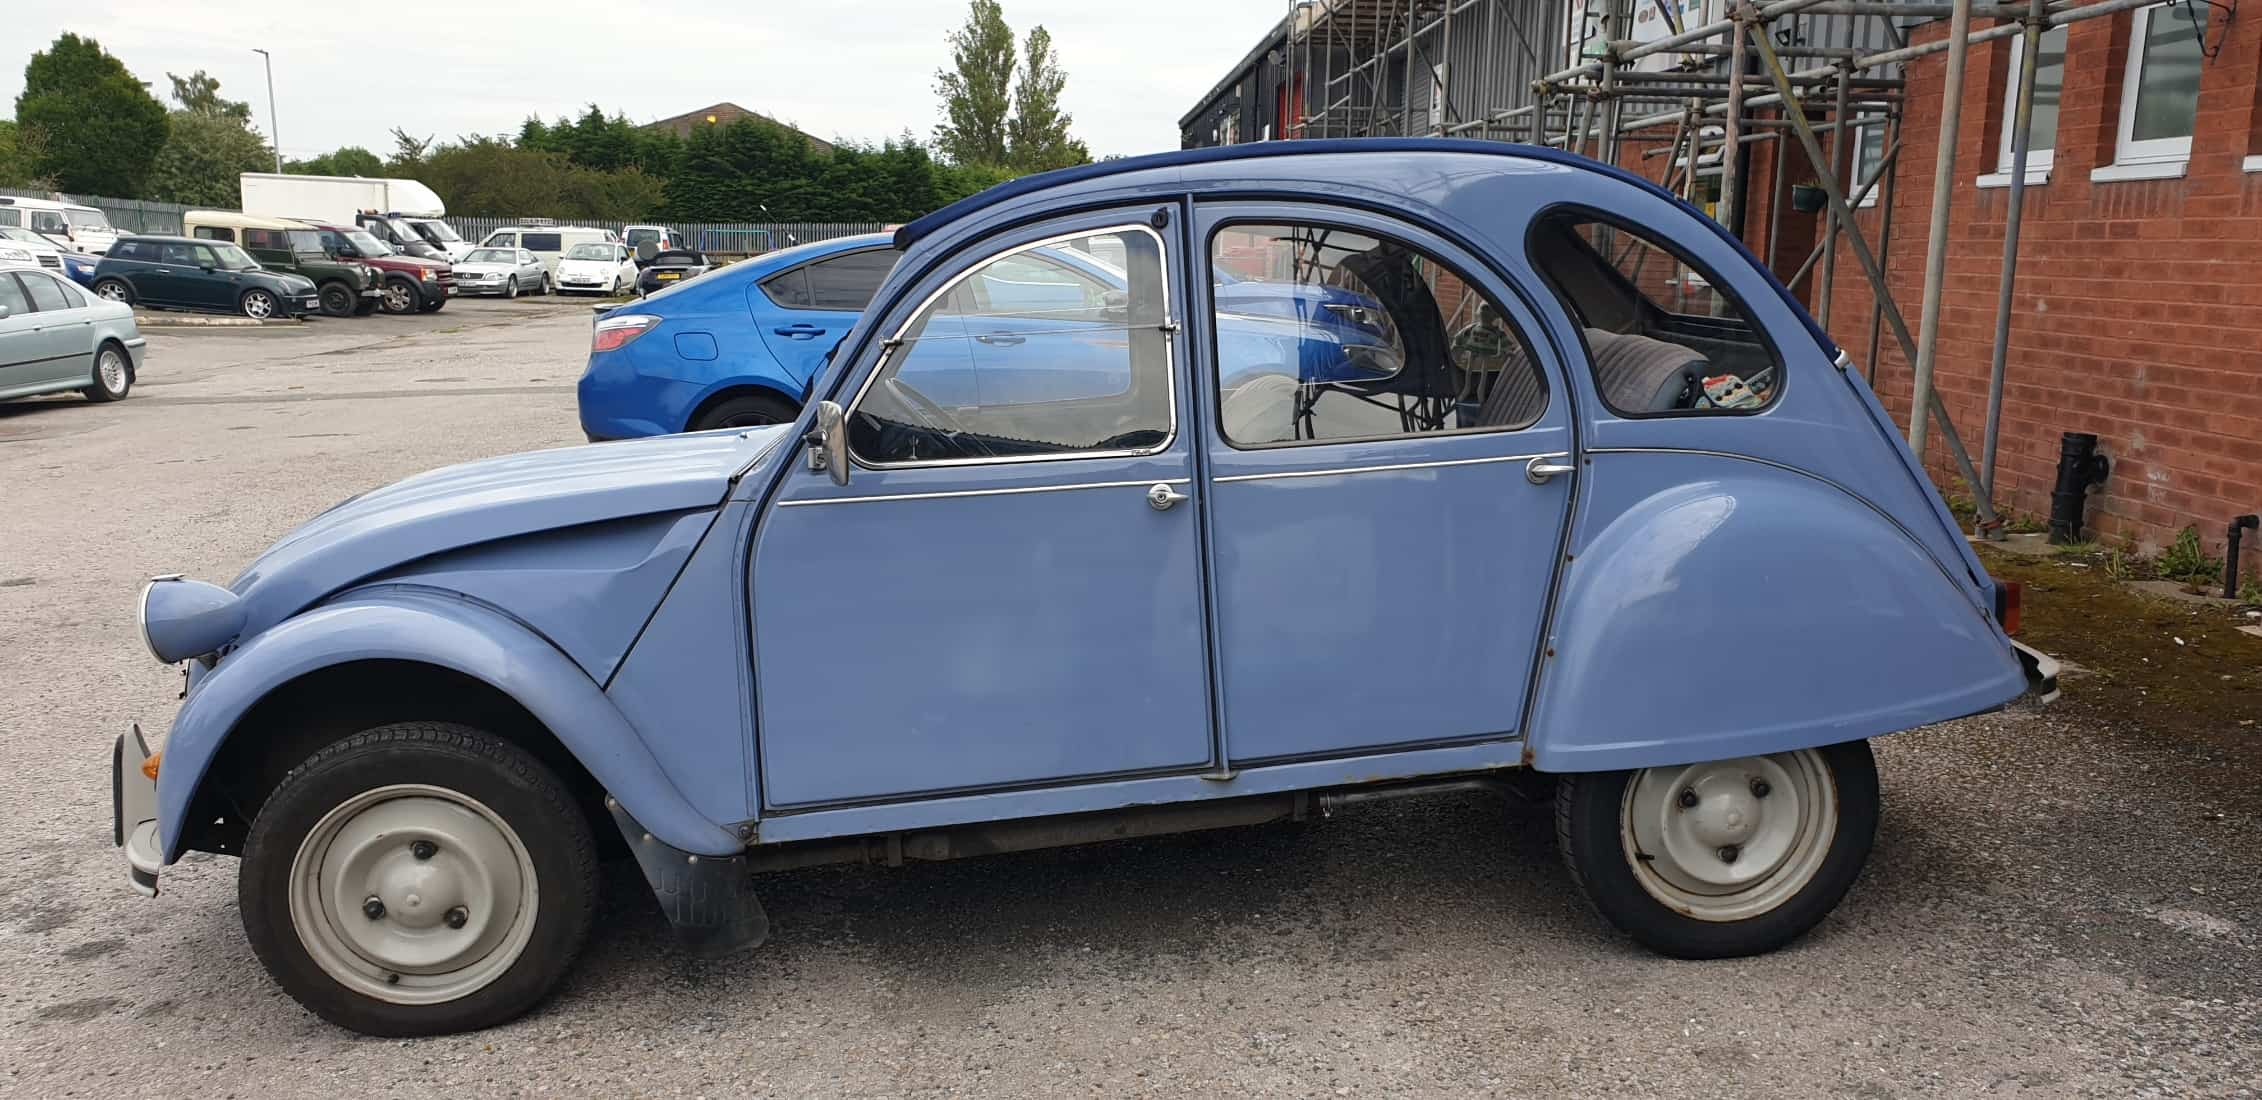 Betty Blue the Citroen 2CV6 comes in for an inspection prior to attending 23rd 2cv World Meeting 2019 in Croatia